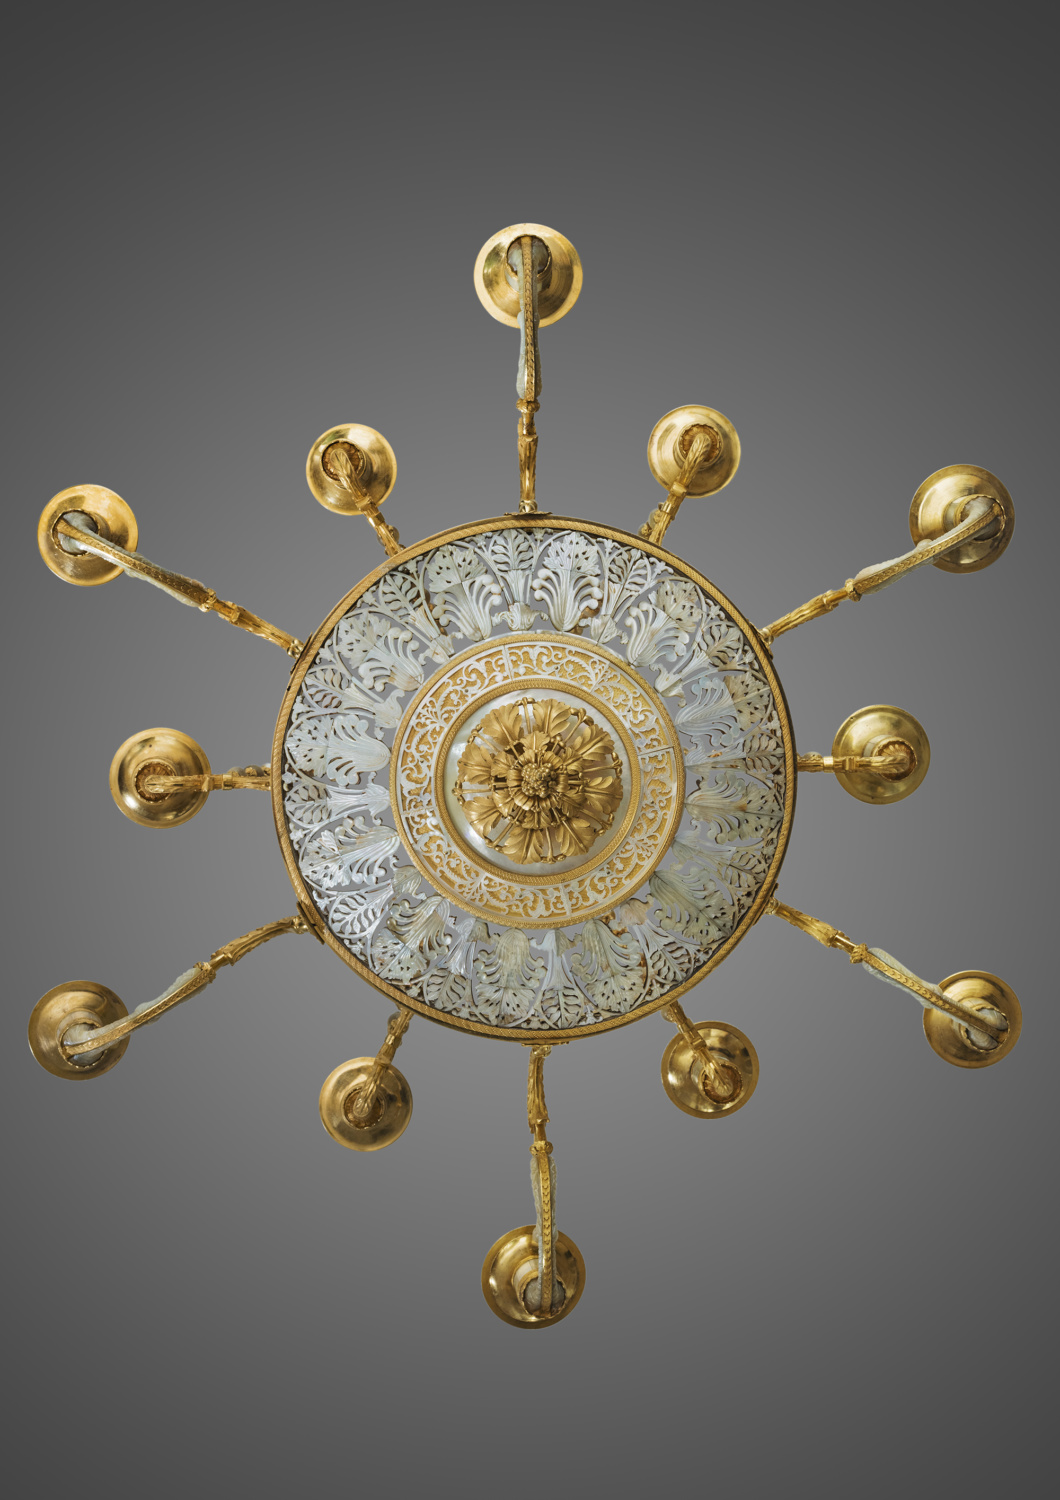 An exceptional ormolu mounted mother-of-pearl - Galerie Kugel